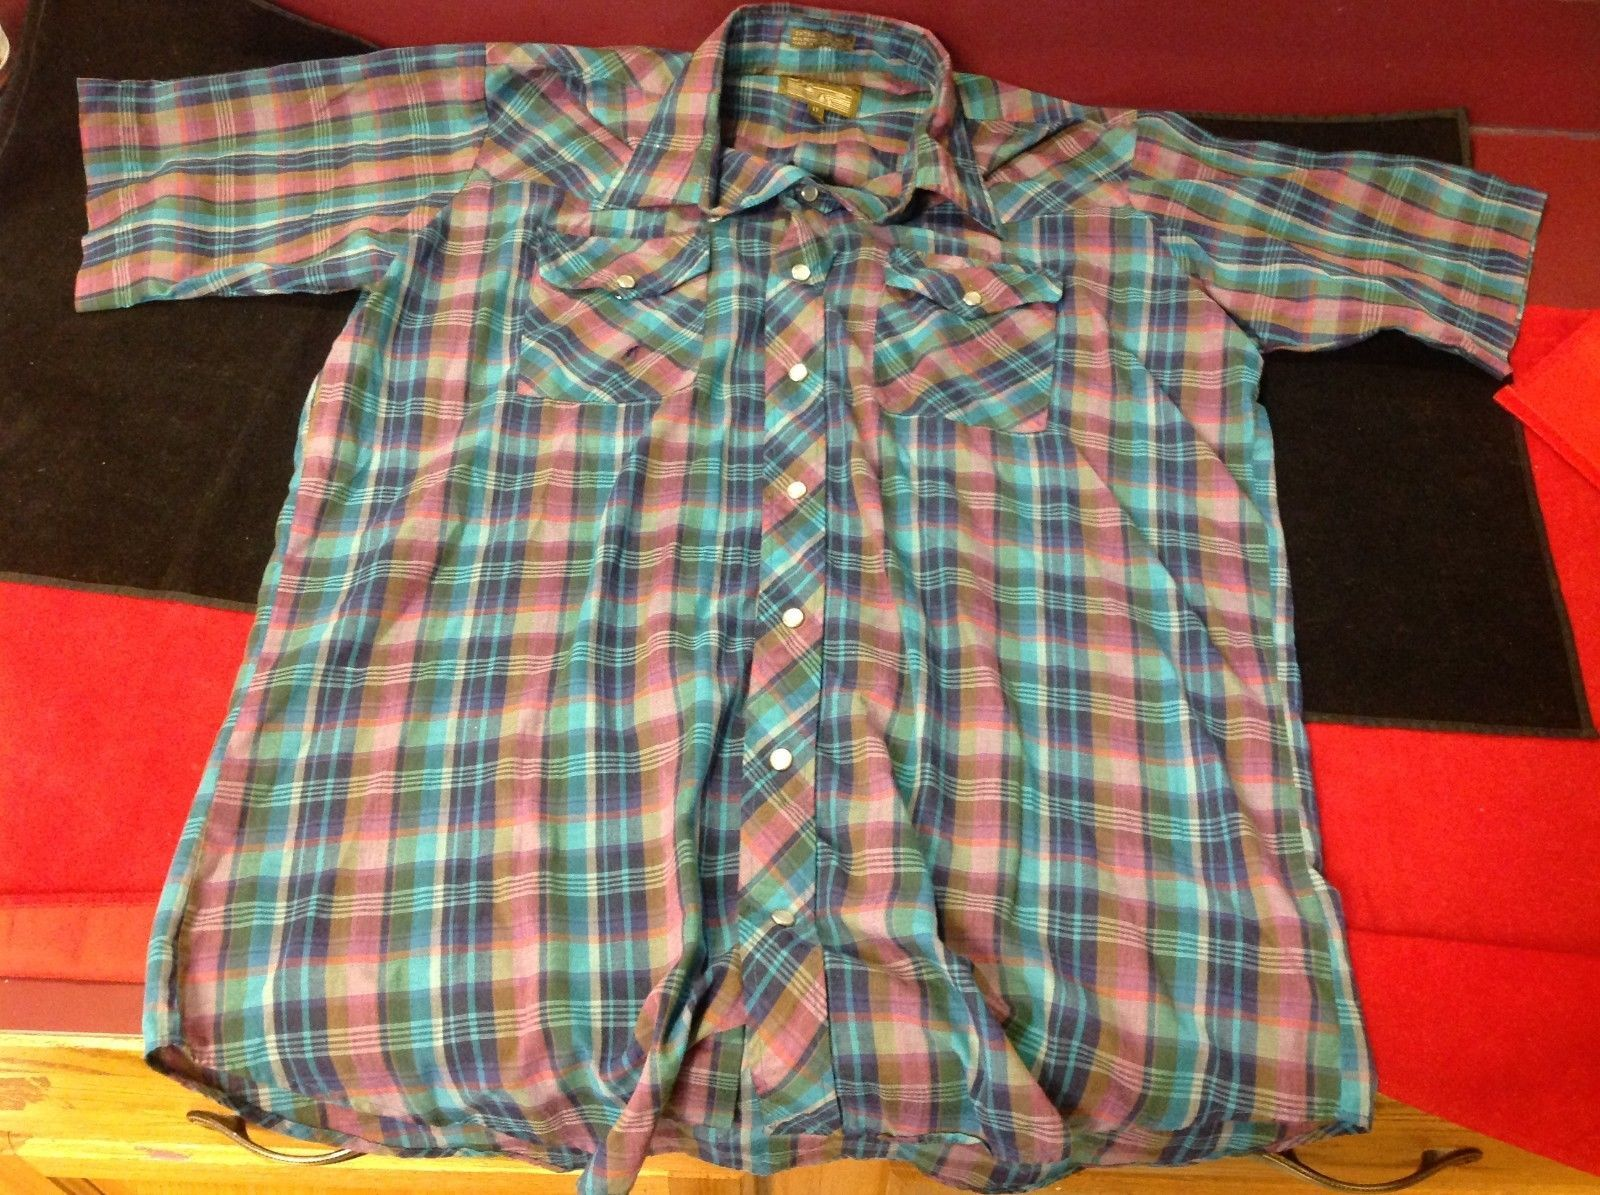 plains man square man purple green short sleeve shirt 16 1/2 tall